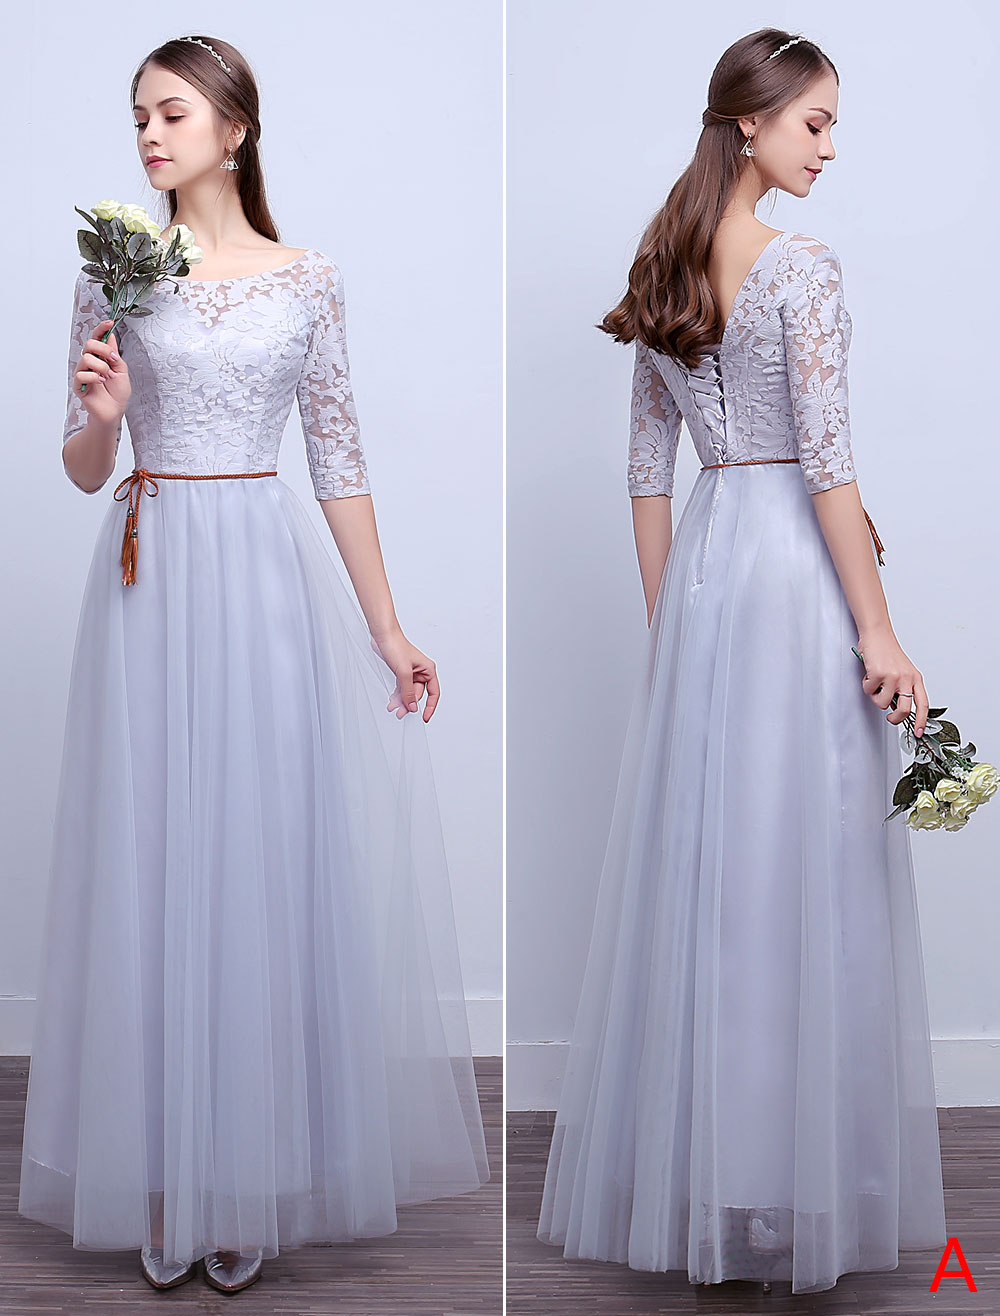 62bb2d5957 ... Silver Bridesmaid Dresses Long Lace Tulle A Line Ankle Length Prom  Dresses-No.2 ...